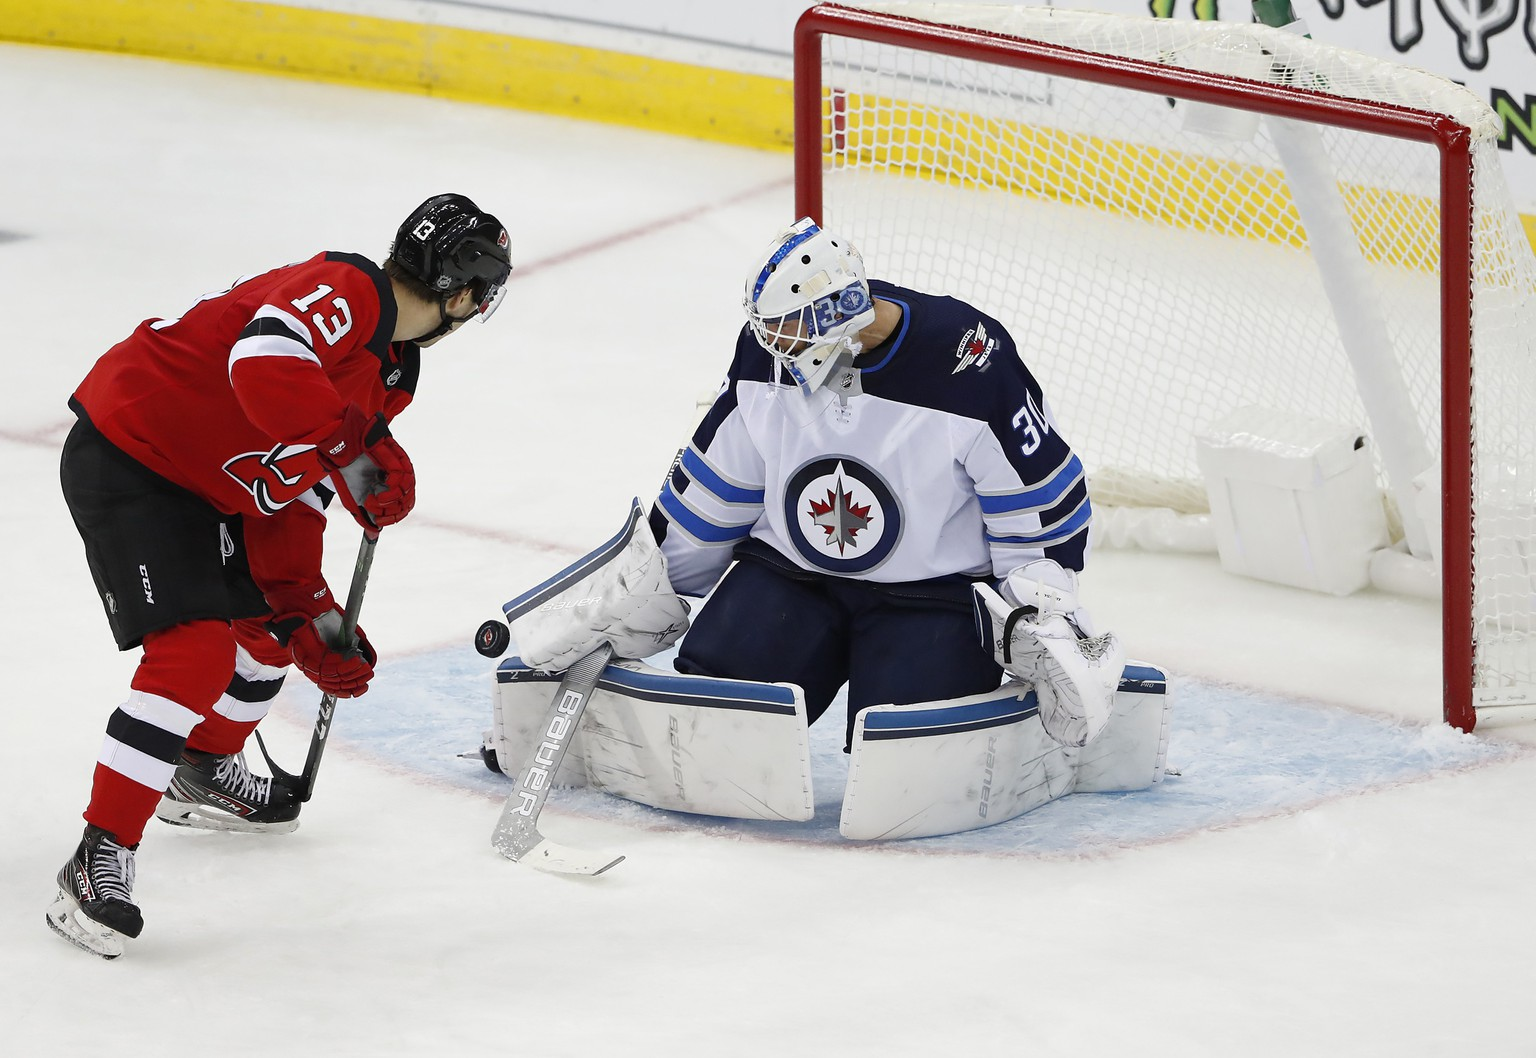 Winnipeg Jets goaltender Laurent Brossoit (30) makes a save against New Jersey Devils center Nico Hischier (13) during the third period of an NHL hockey game Friday, Oct. 4, 2019, in Newark, N.J. (AP Photo/Noah K. Murray)